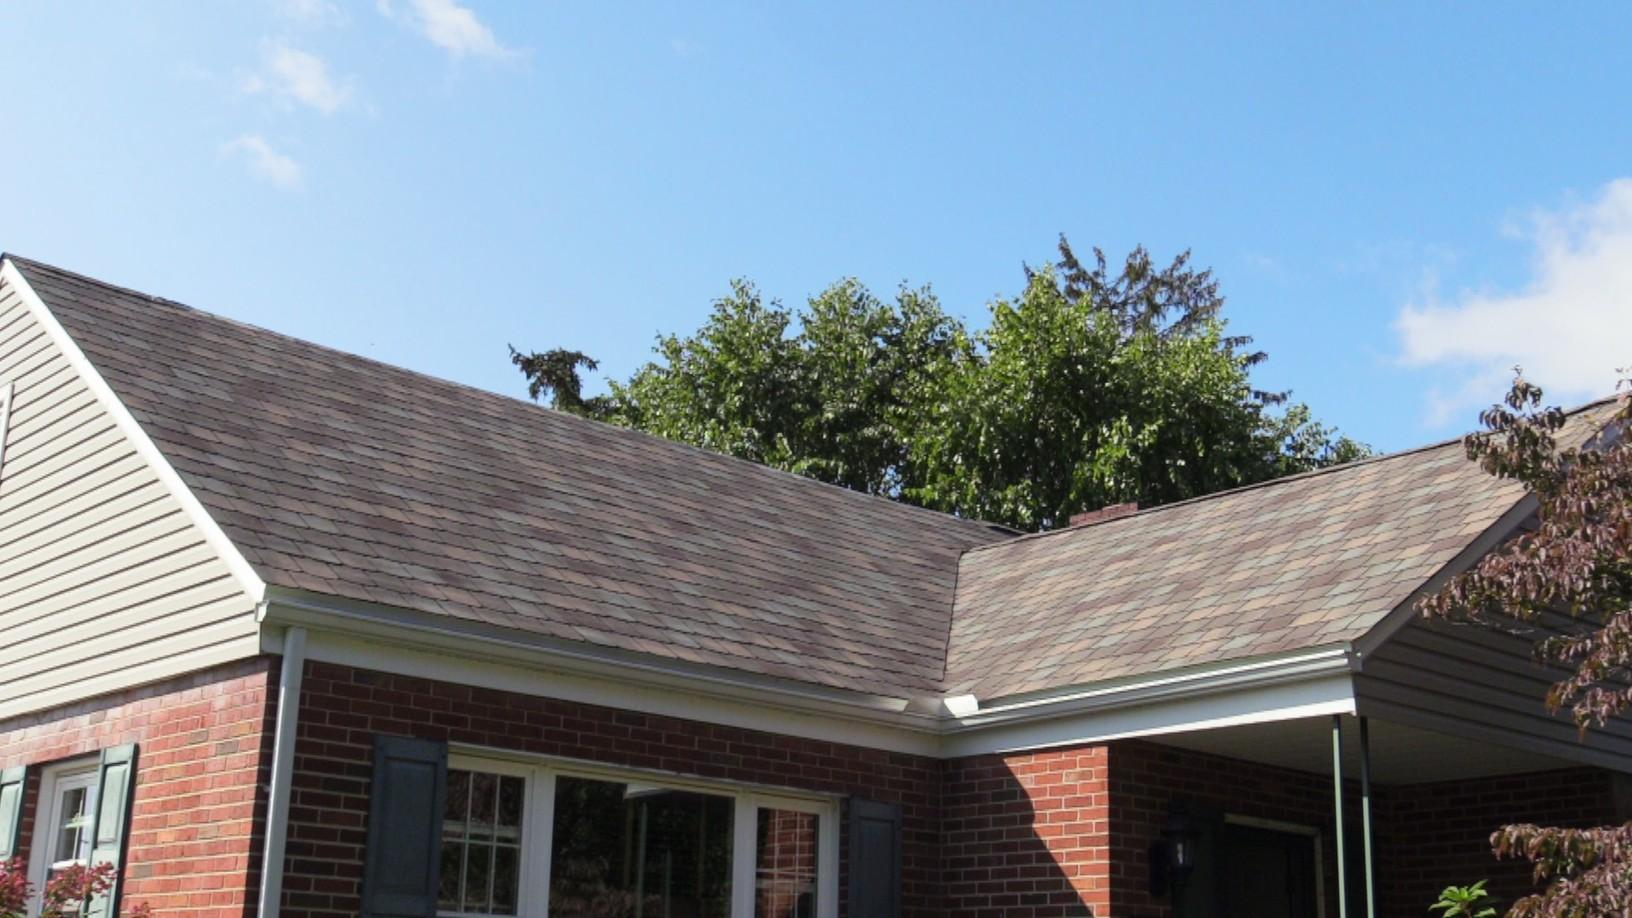 New Roof Installed in The West End of Allentown, Pennsylvania - After Photo